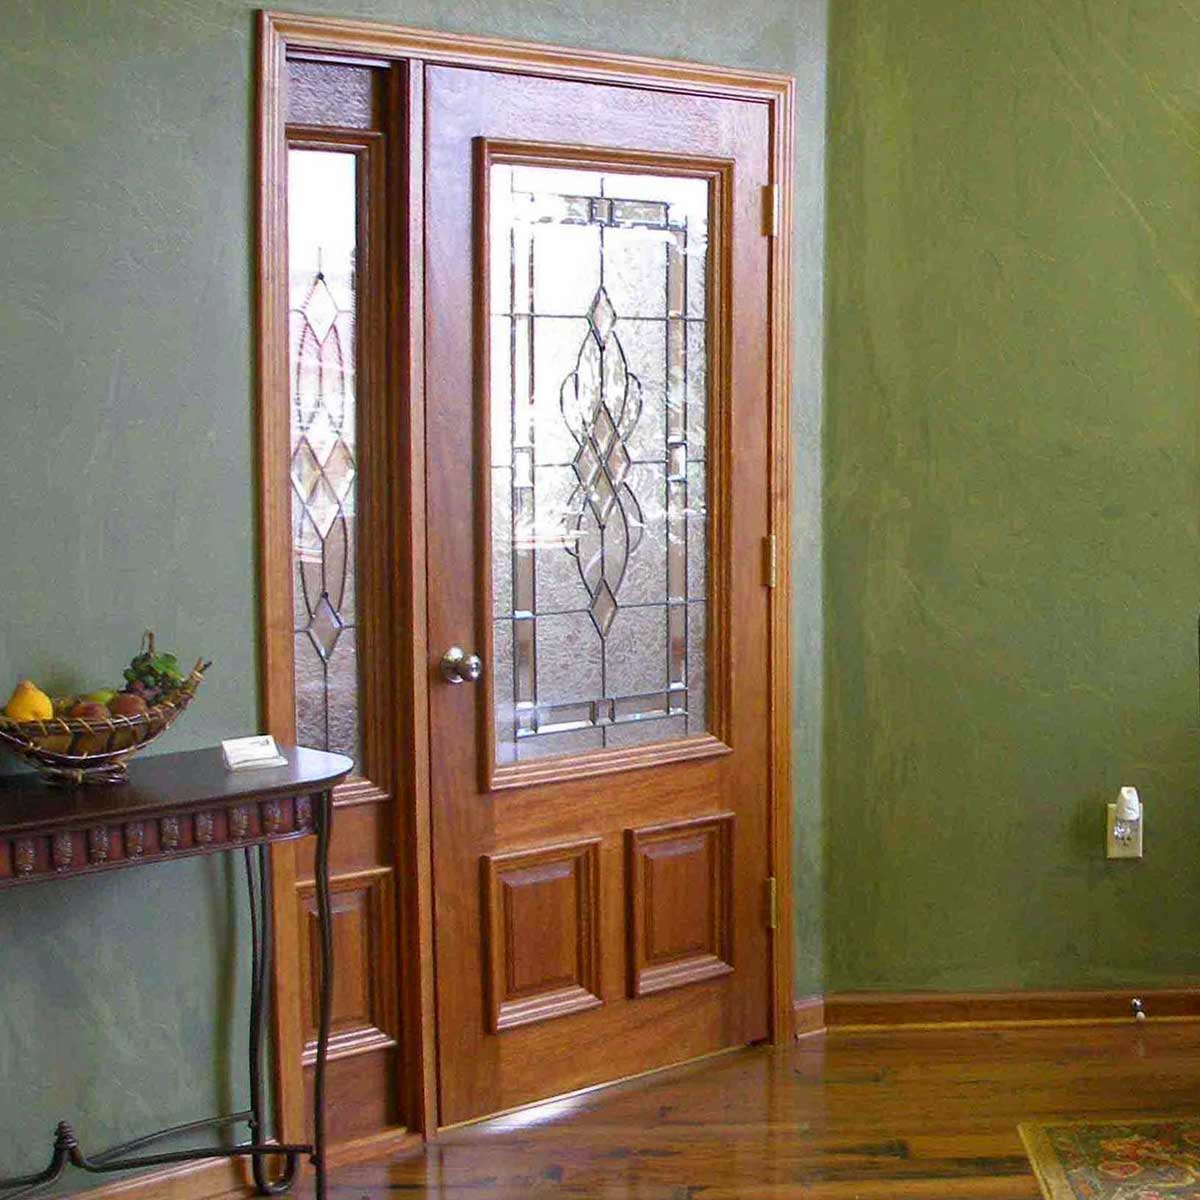 Model-Door-Minimalist-Home-Wood-Teak-Leaf-One